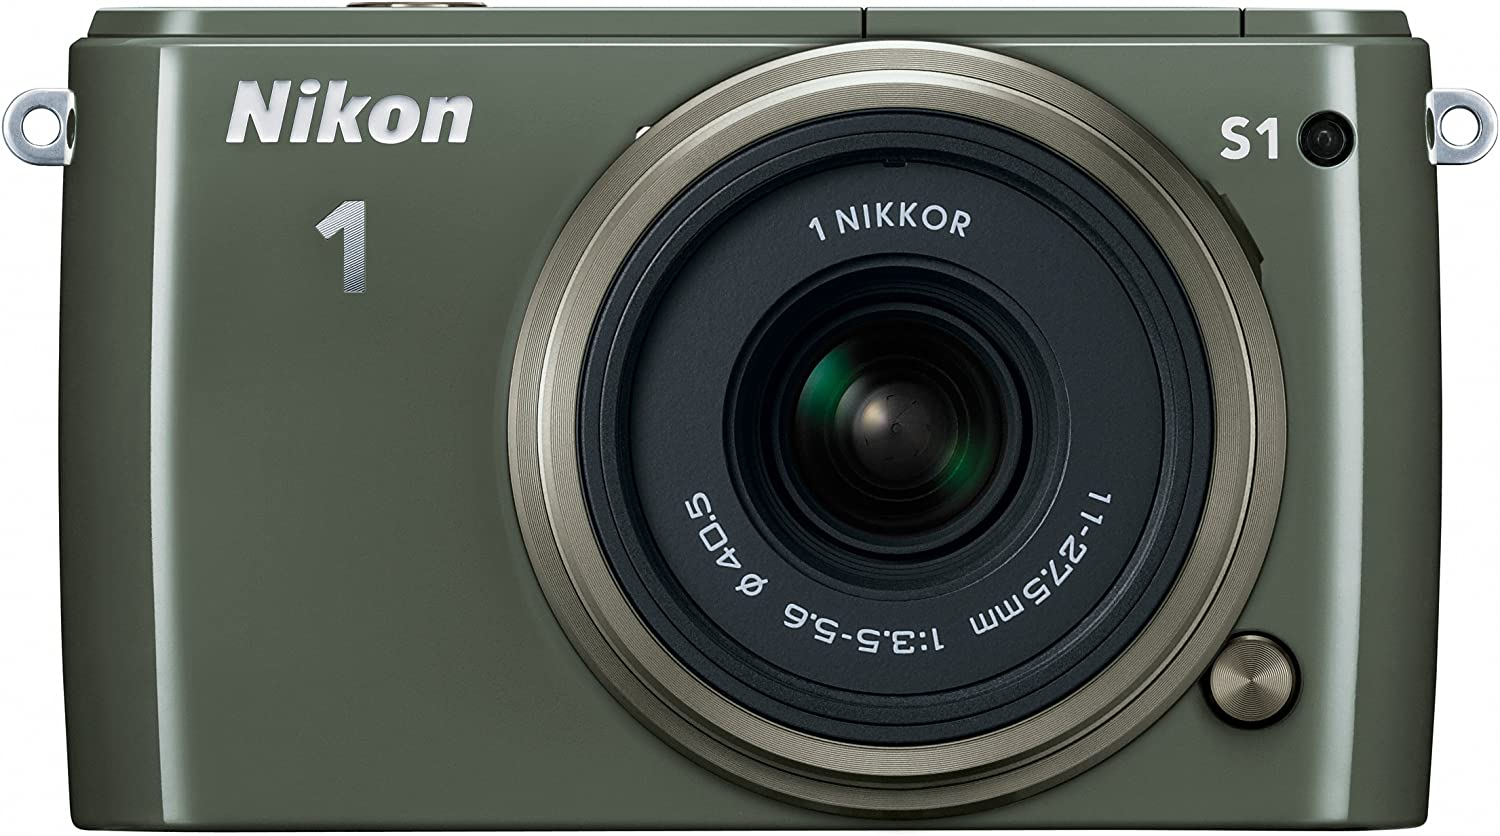 Nikon 1 S1 10.1 MP HD Digital Camera with 11-27.5mm VR 1 NIKKOR Lens (Khaki)